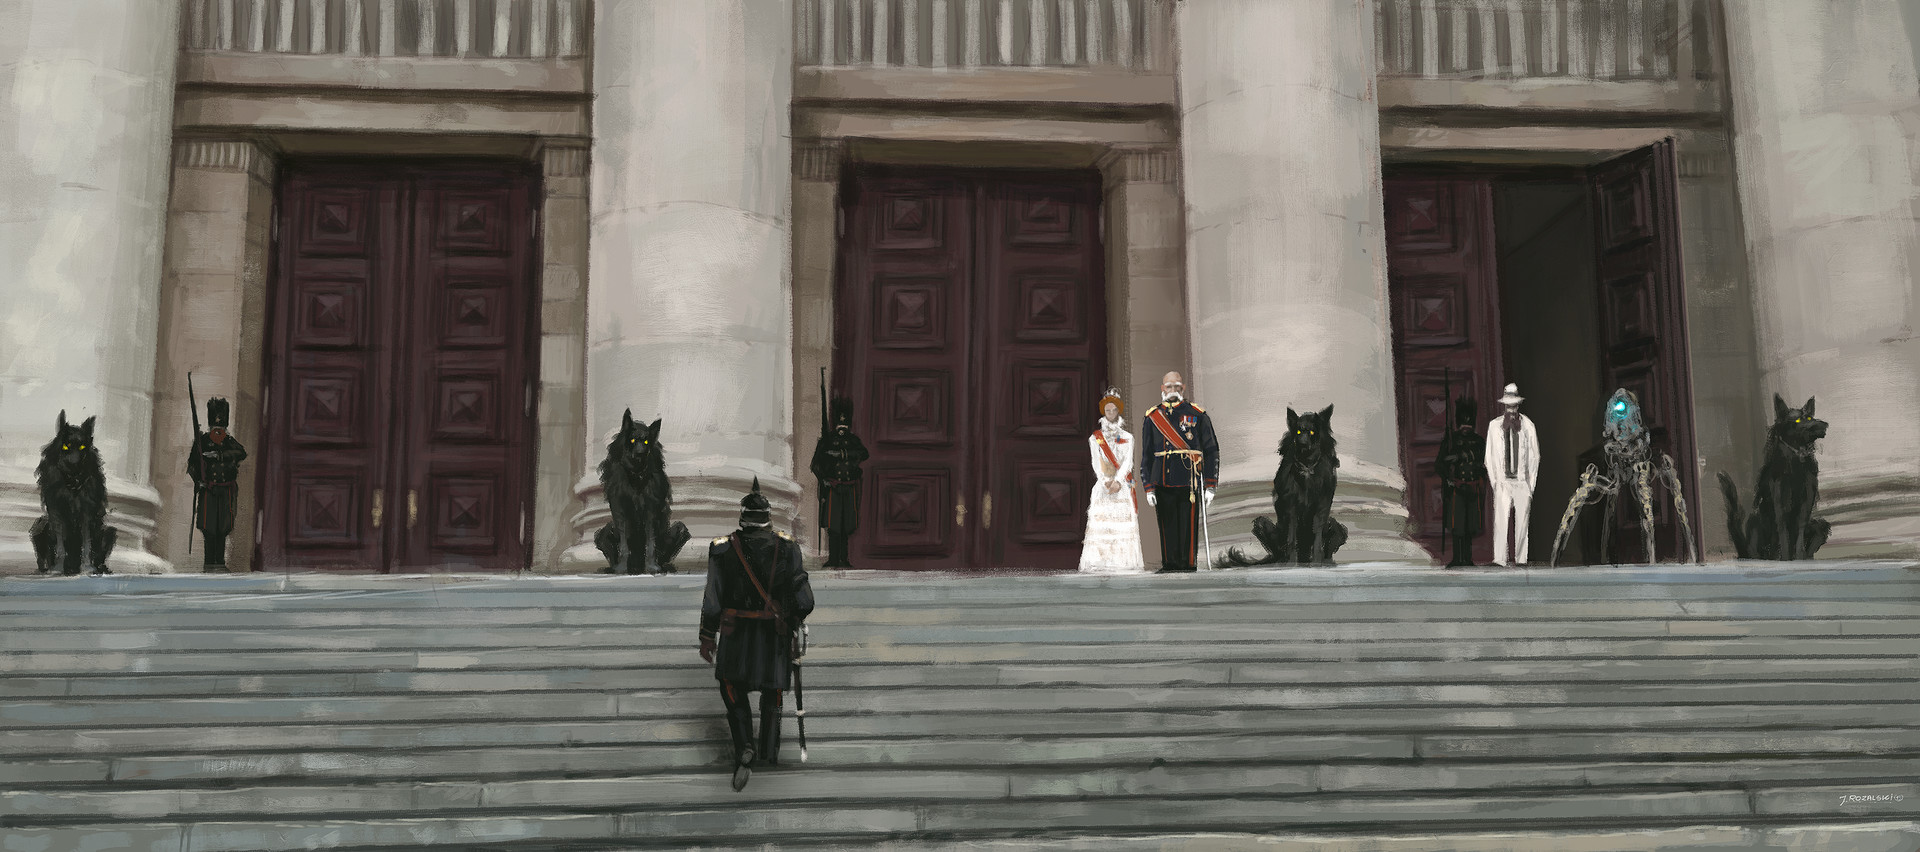 Jakub rozalski foundations of the empires